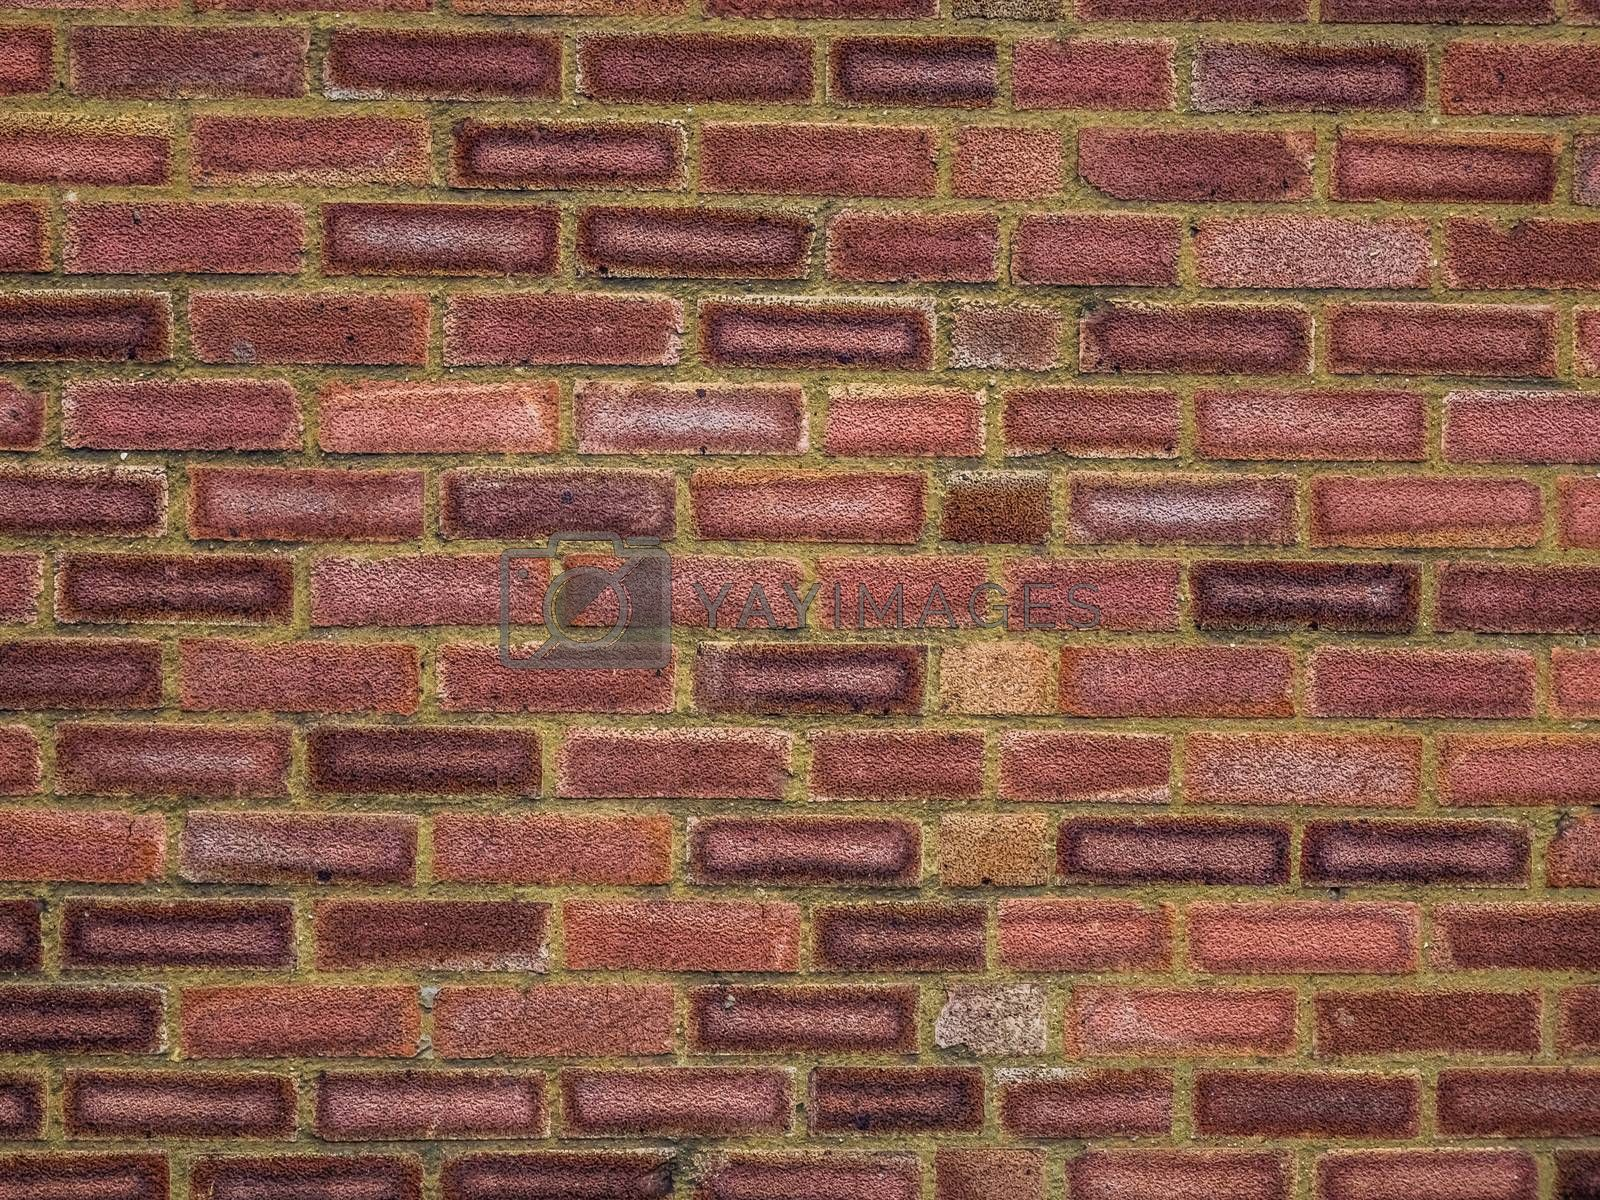 Red bricks wall pattern in a newly constructed building